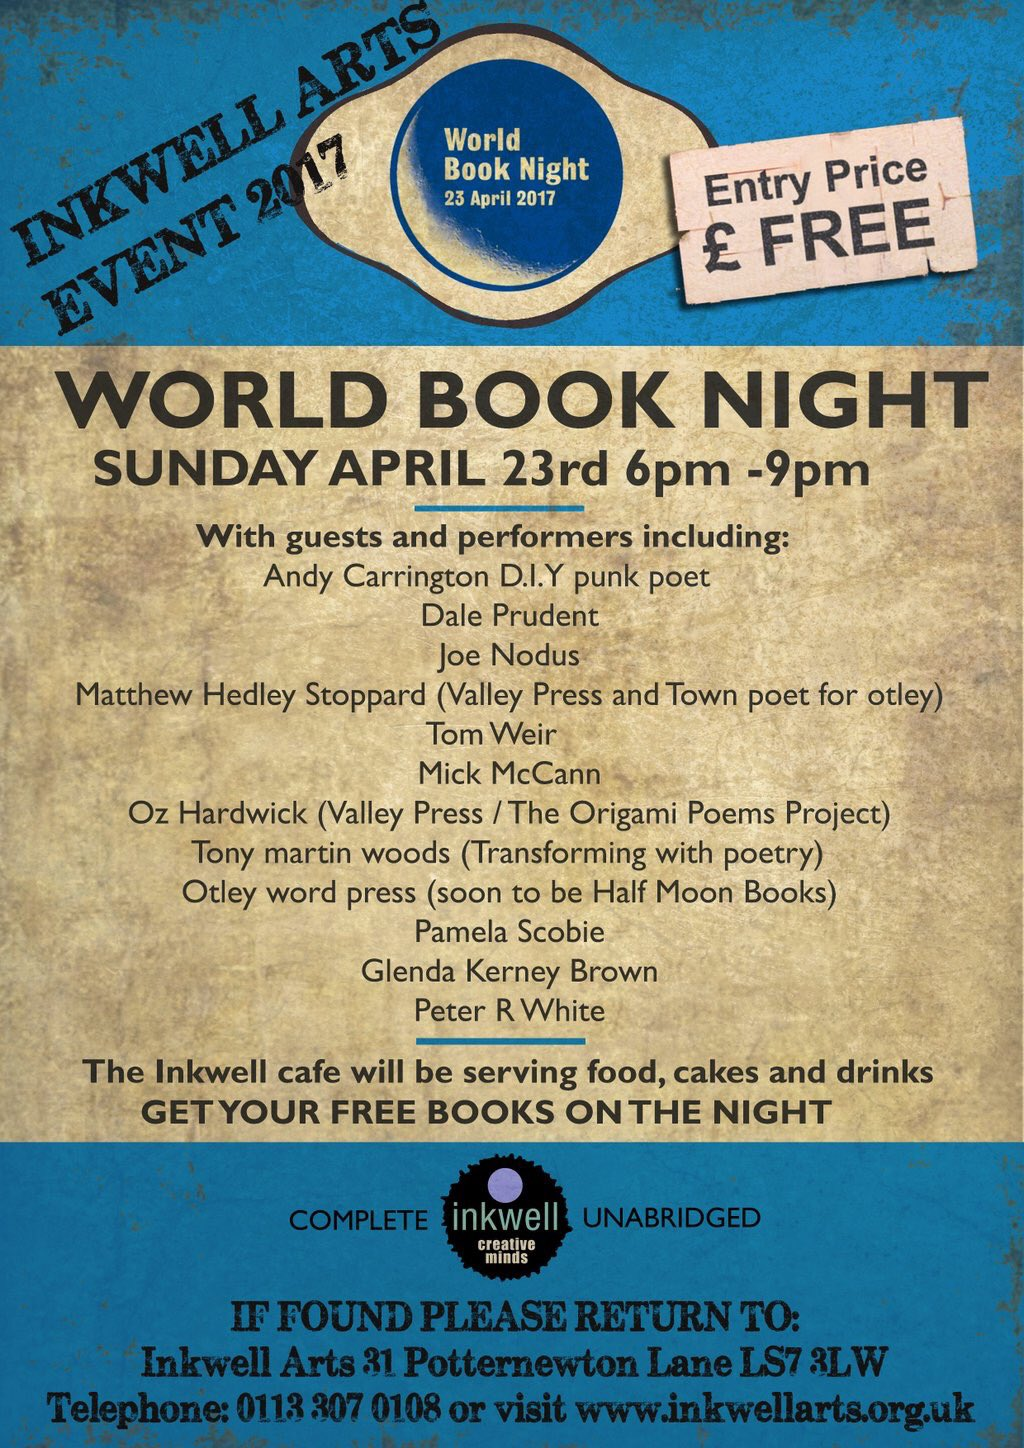 Don't forget! World book night @InkwellArts this Sunday- free entry and loads of good stuff happening 😀 https://t.co/1mjSLfV7dF